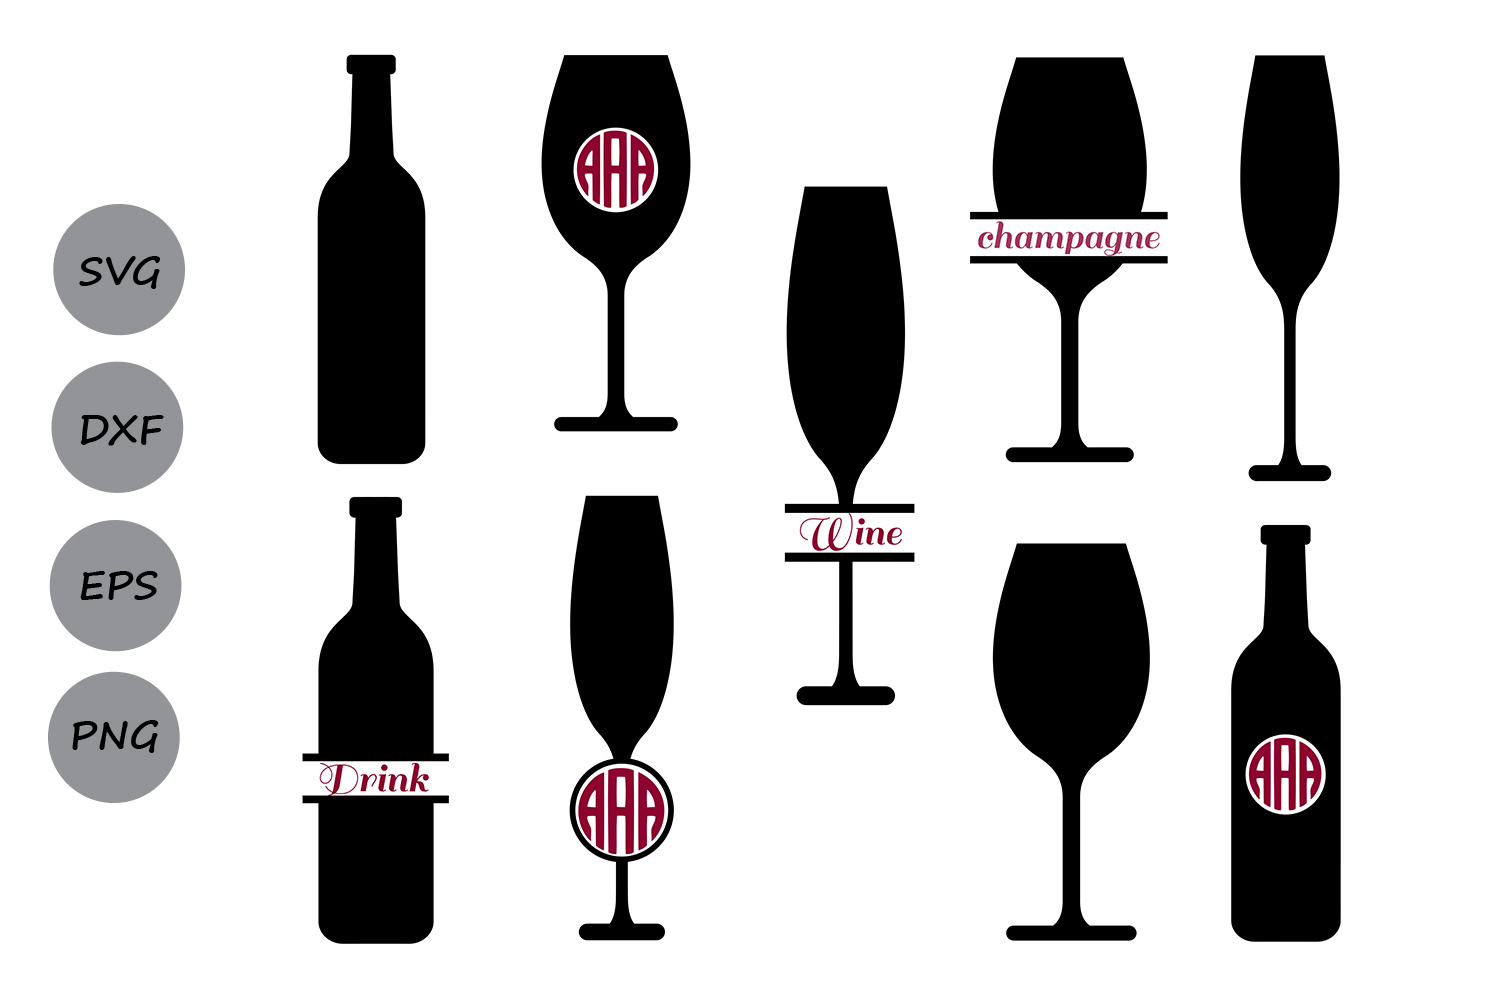 Download Free Wine Glass Monogram Svg Graphic By Cosmosfineart Creative Fabrica for Cricut Explore, Silhouette and other cutting machines.